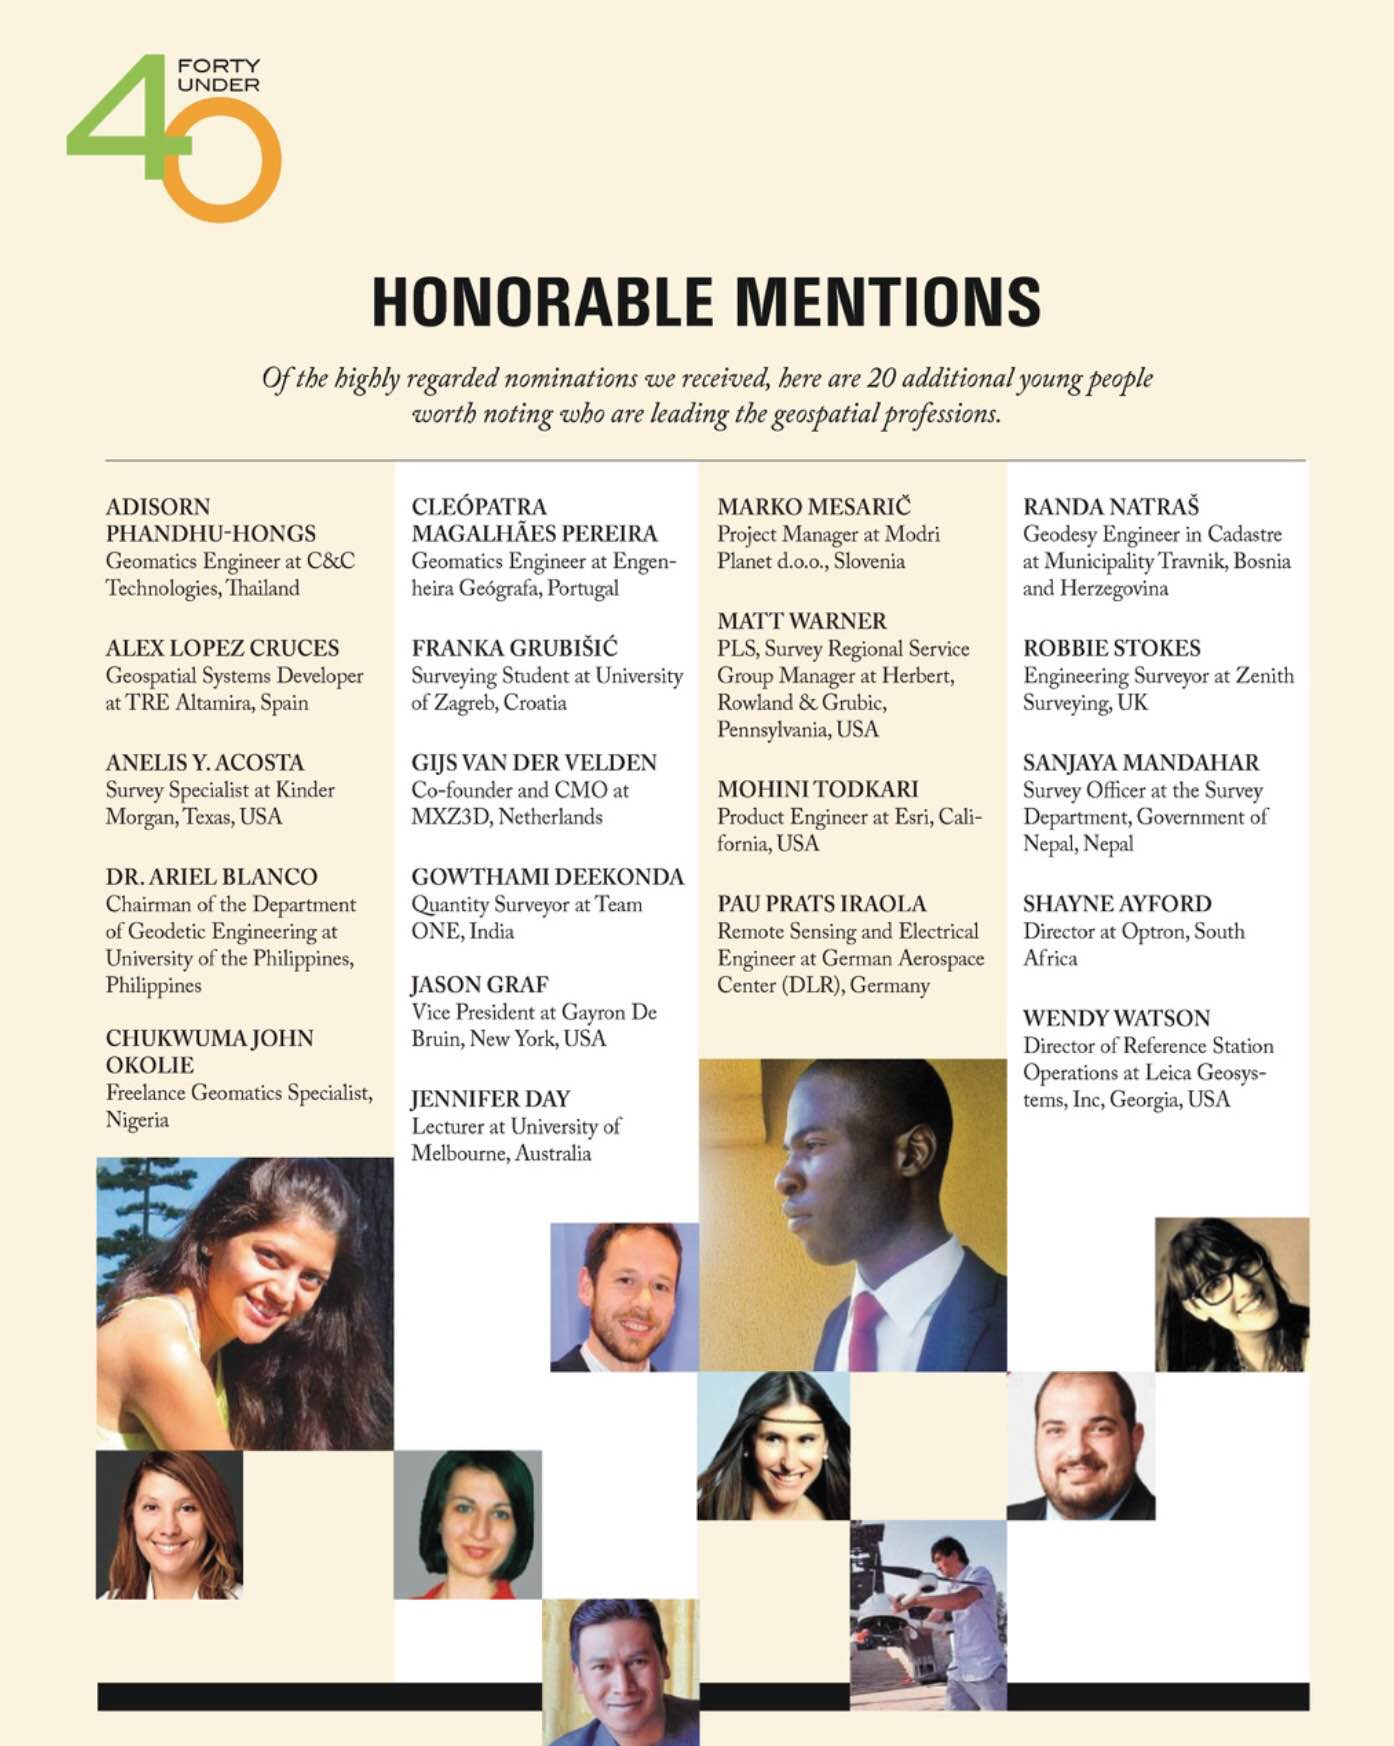 40 under 40 2017 honorable mentions